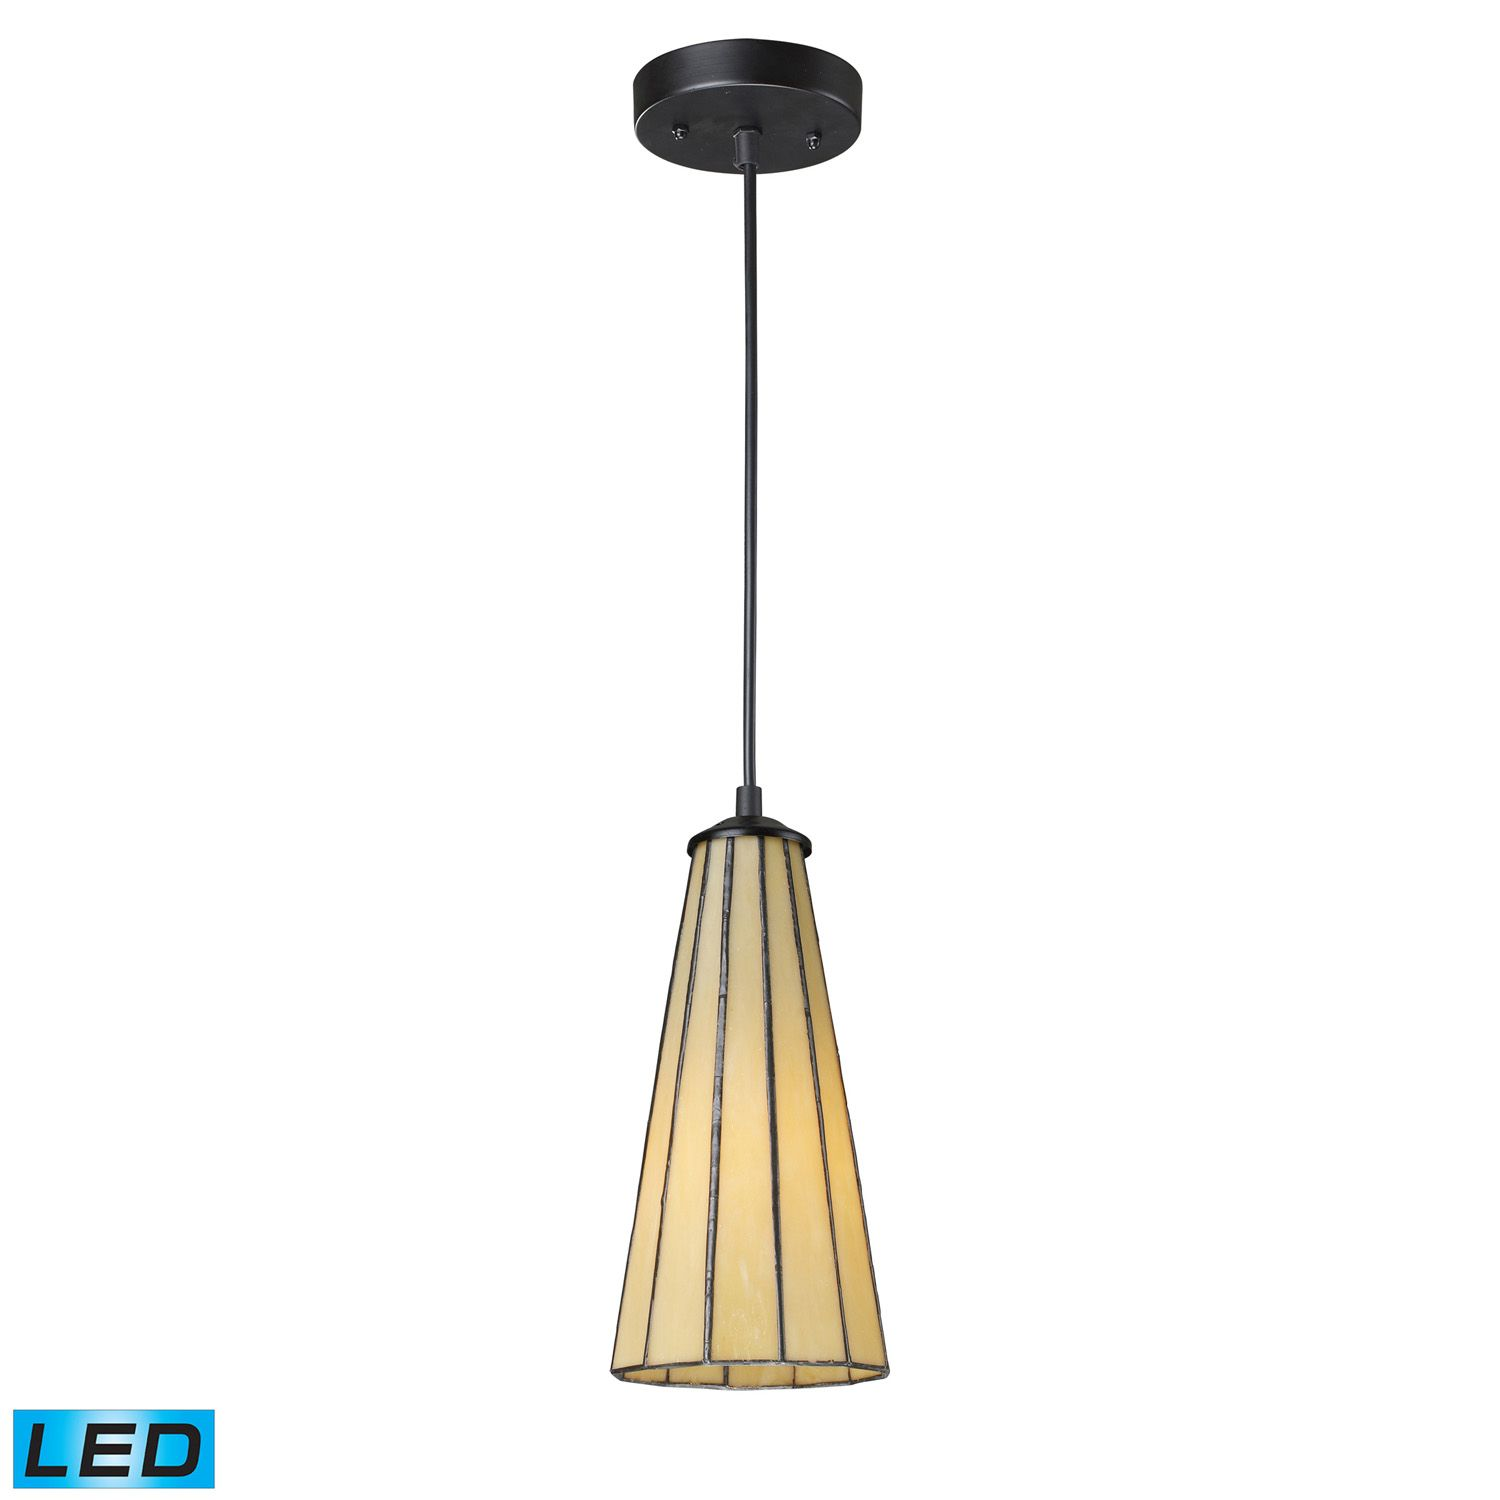 One Light Pendant...Idlewood  sc 1 st  Pinterest & One Light Pendant...Idlewood | Pendants | Pinterest | Matte black ... azcodes.com